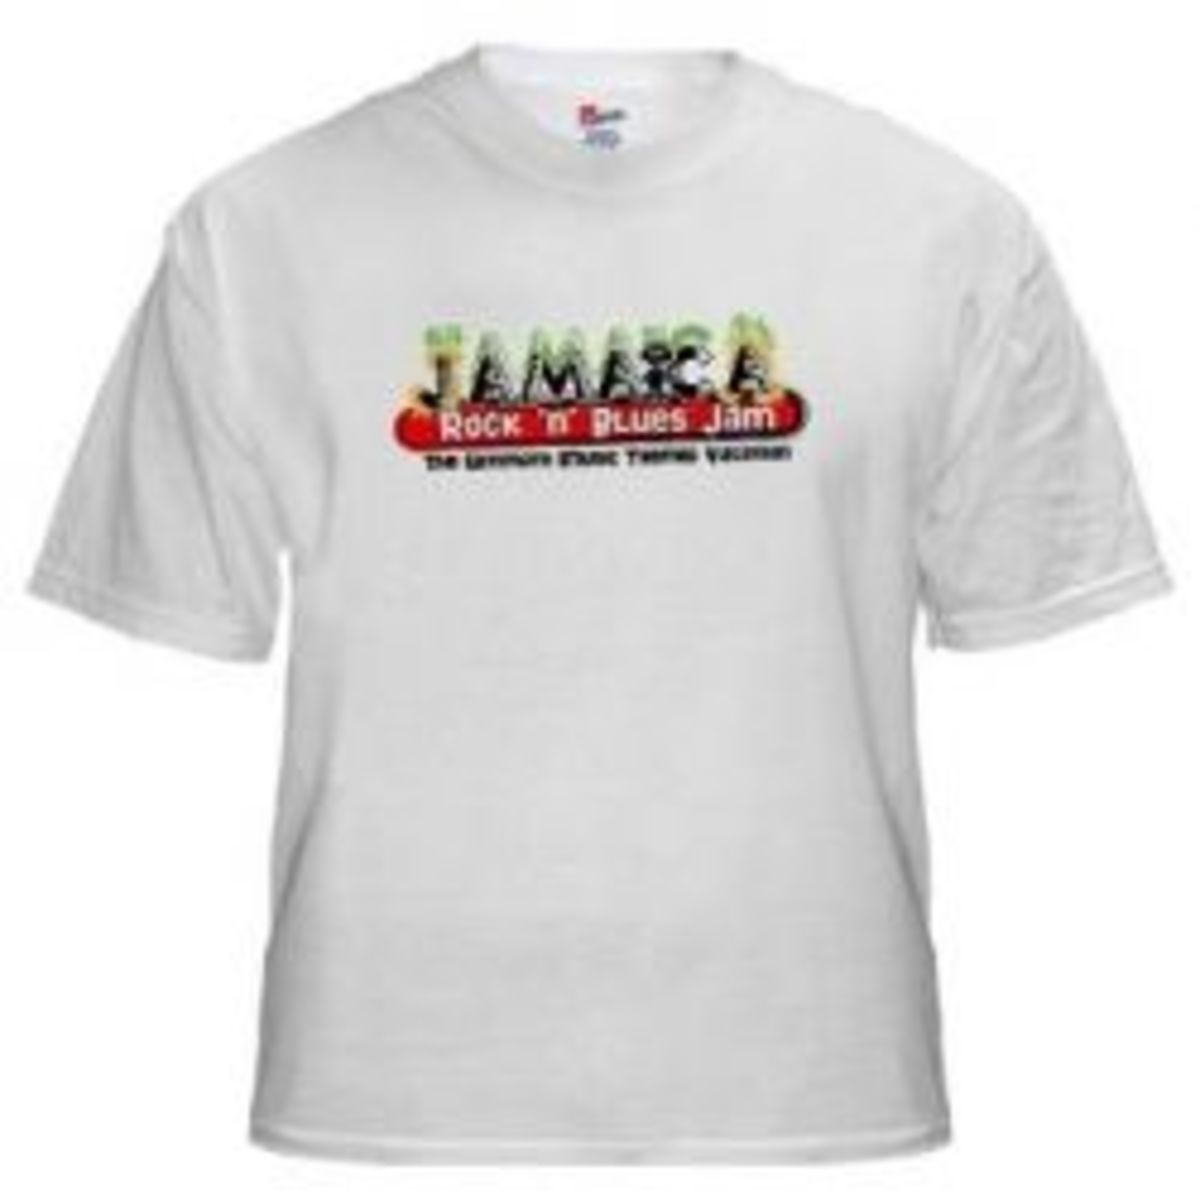 Jamaica Rock 'n' Blues Jam Shirt